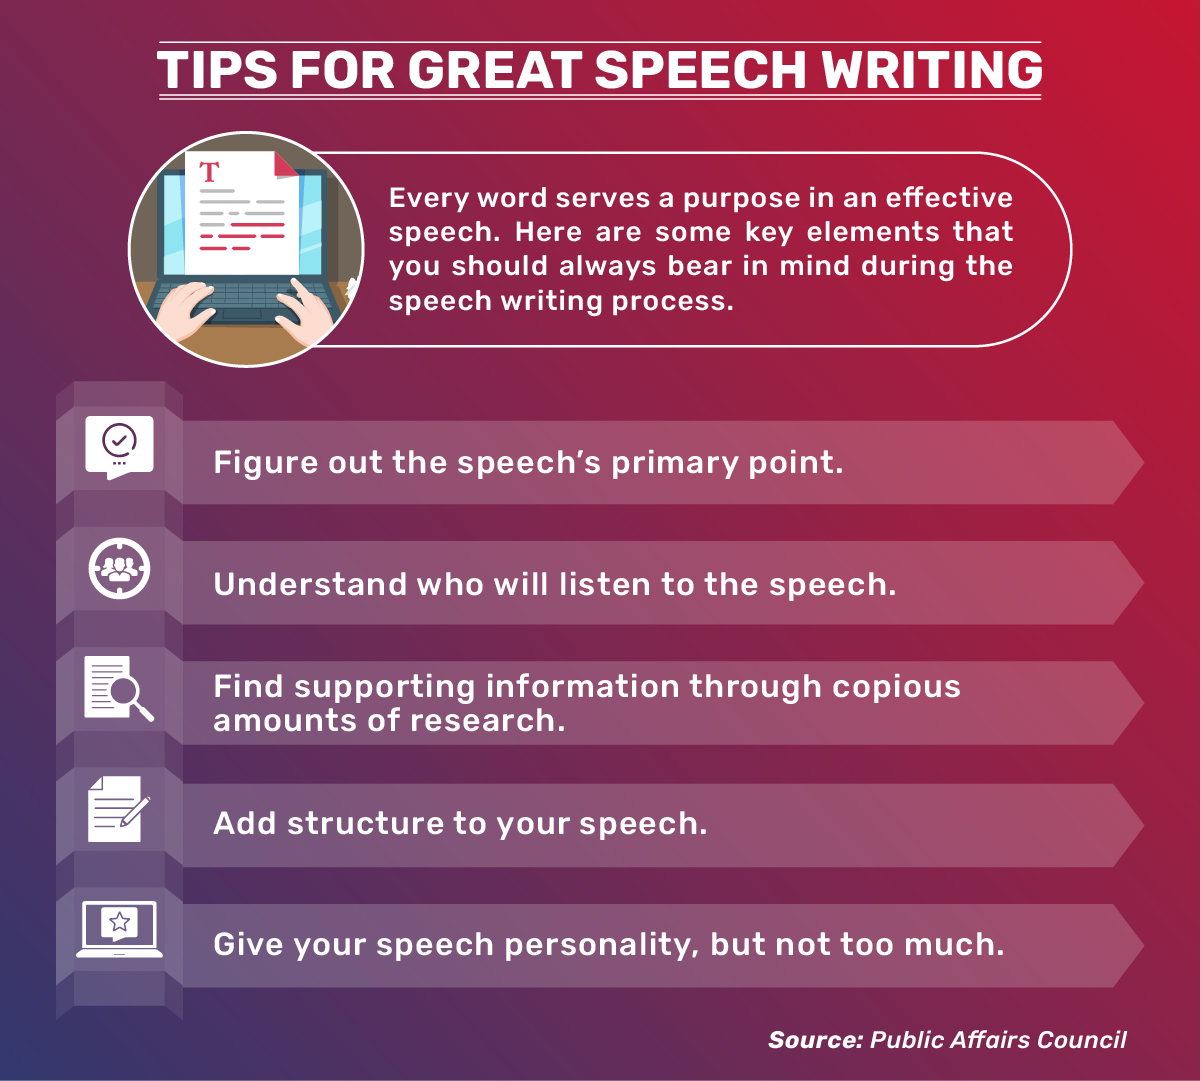 Key elements of writing a great speech include figuring out the speech's primary point and understanding the audience.